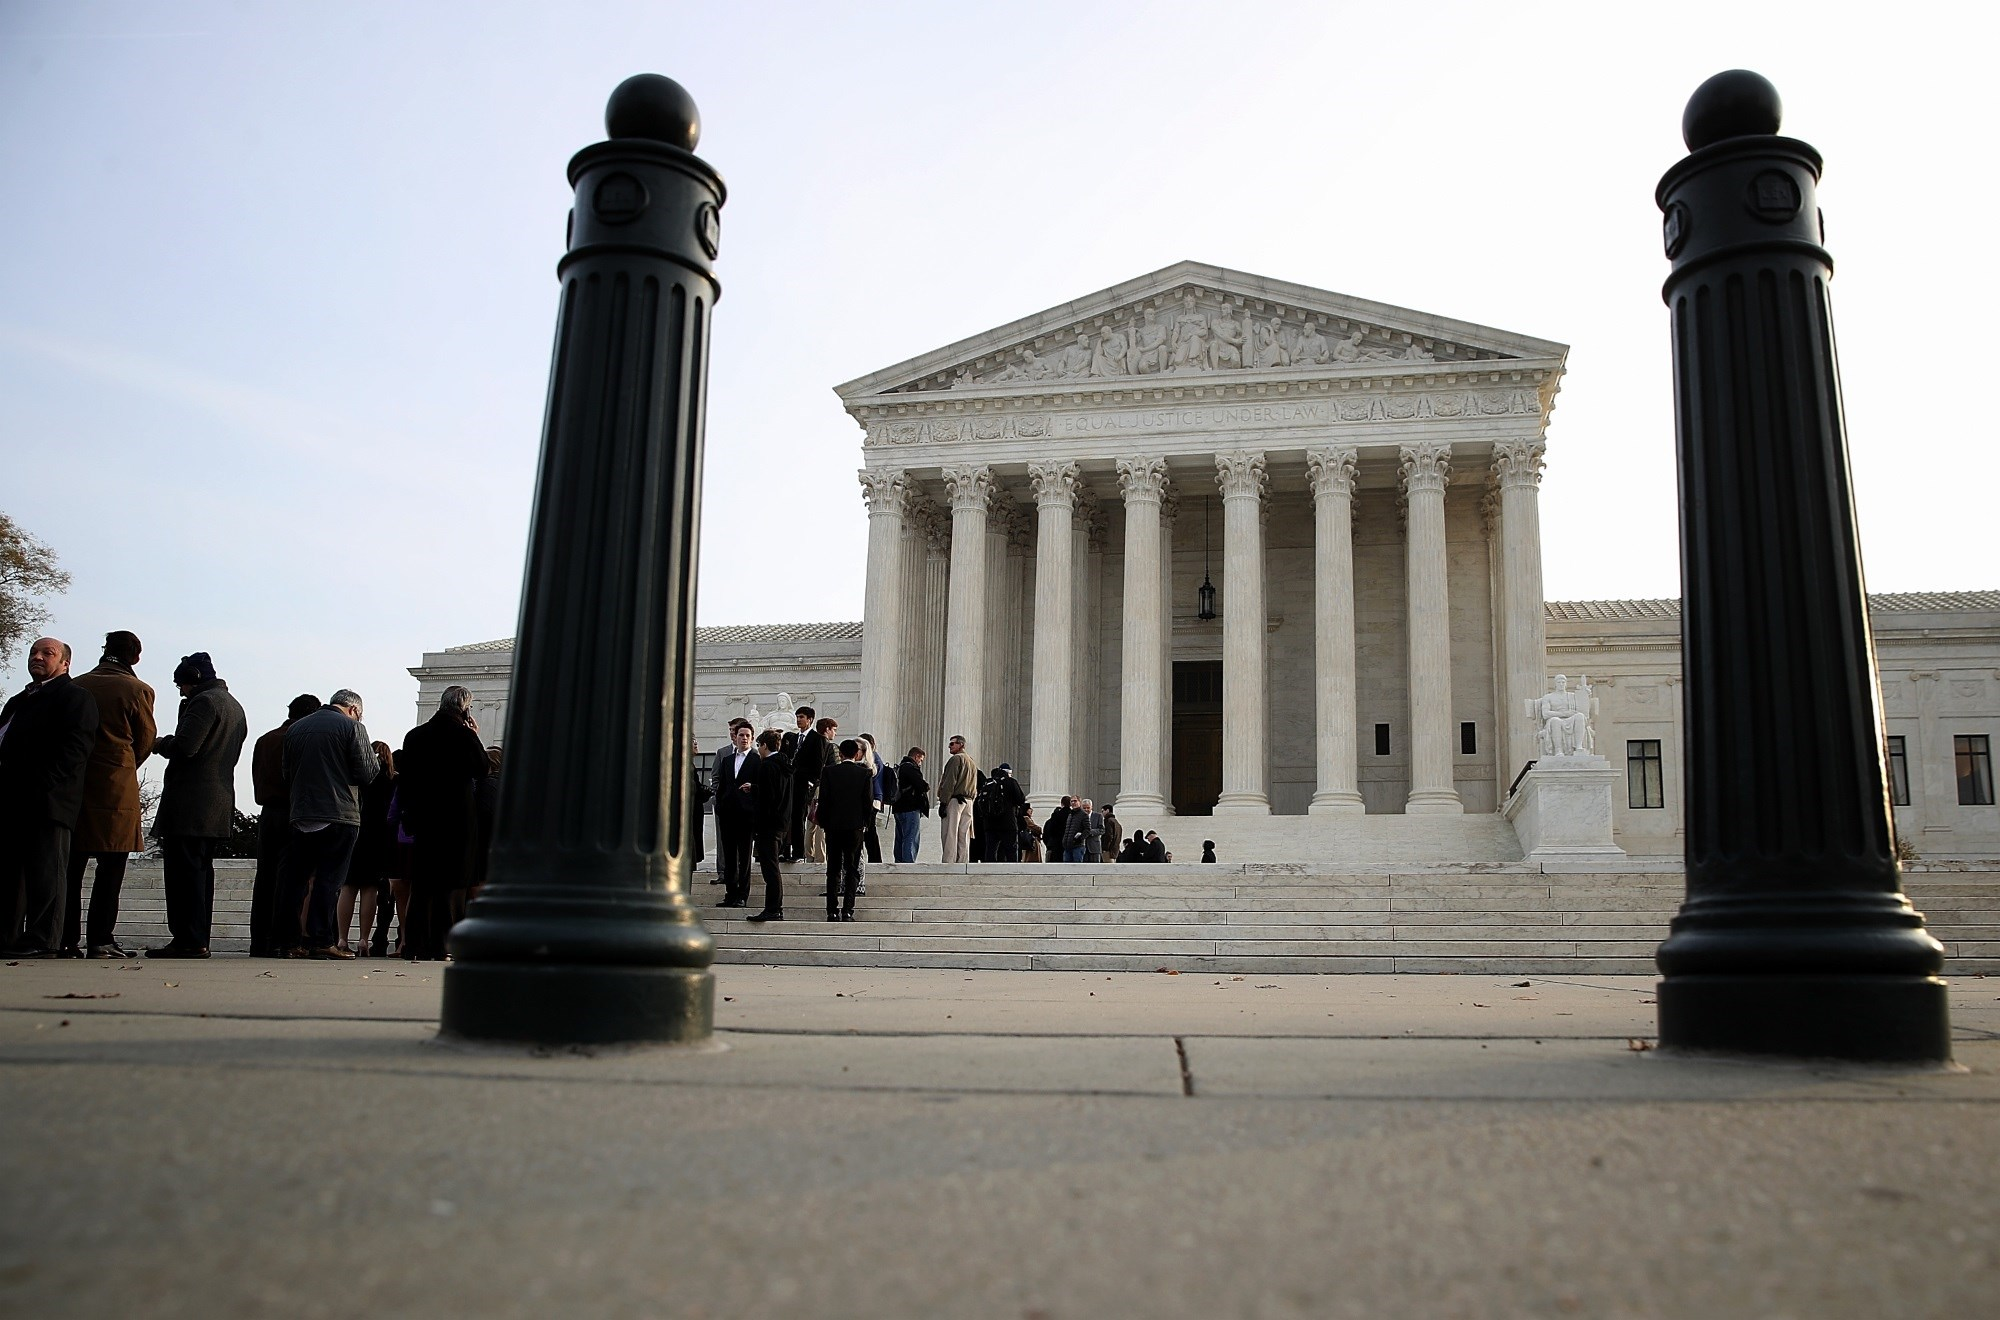 The majority of respondents think that the Supreme Court should keep Roe v Wade in place.